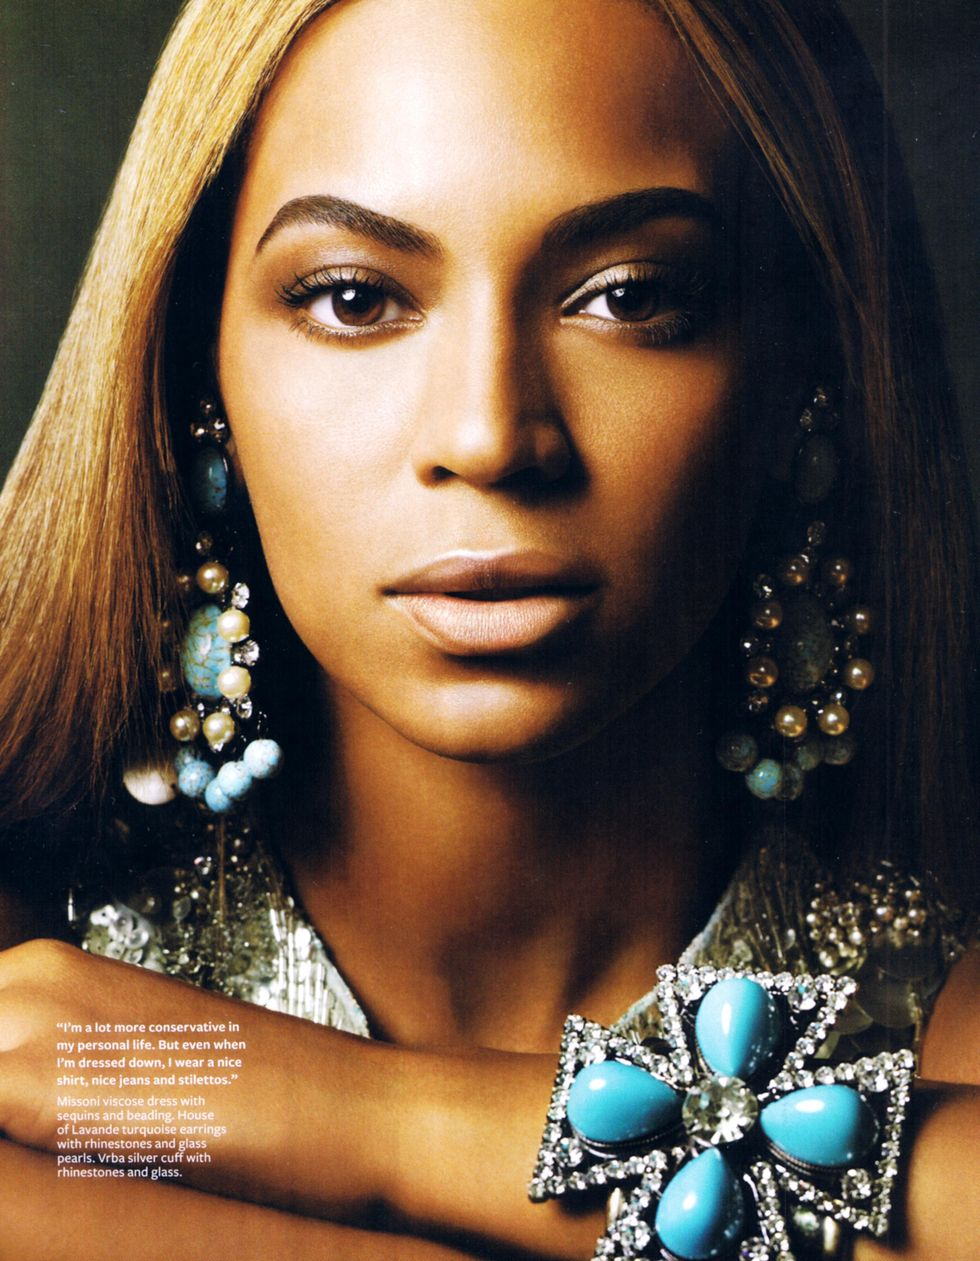 beyonce-knowles-instyle-magazine-november-2008-01